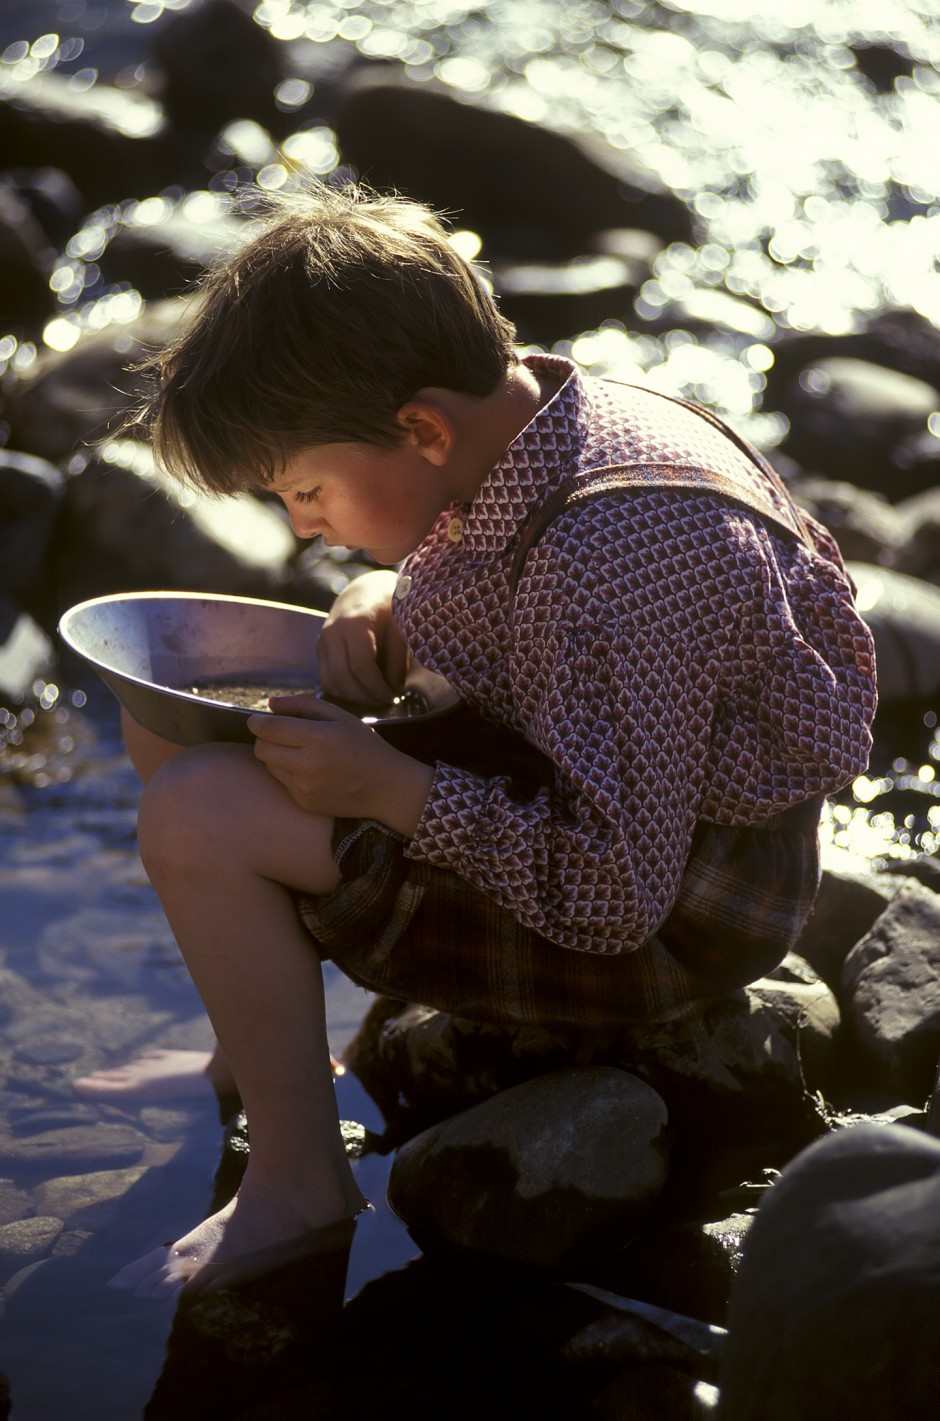 USA: California: GoldCountry: Coloma: Gold panning along the American River